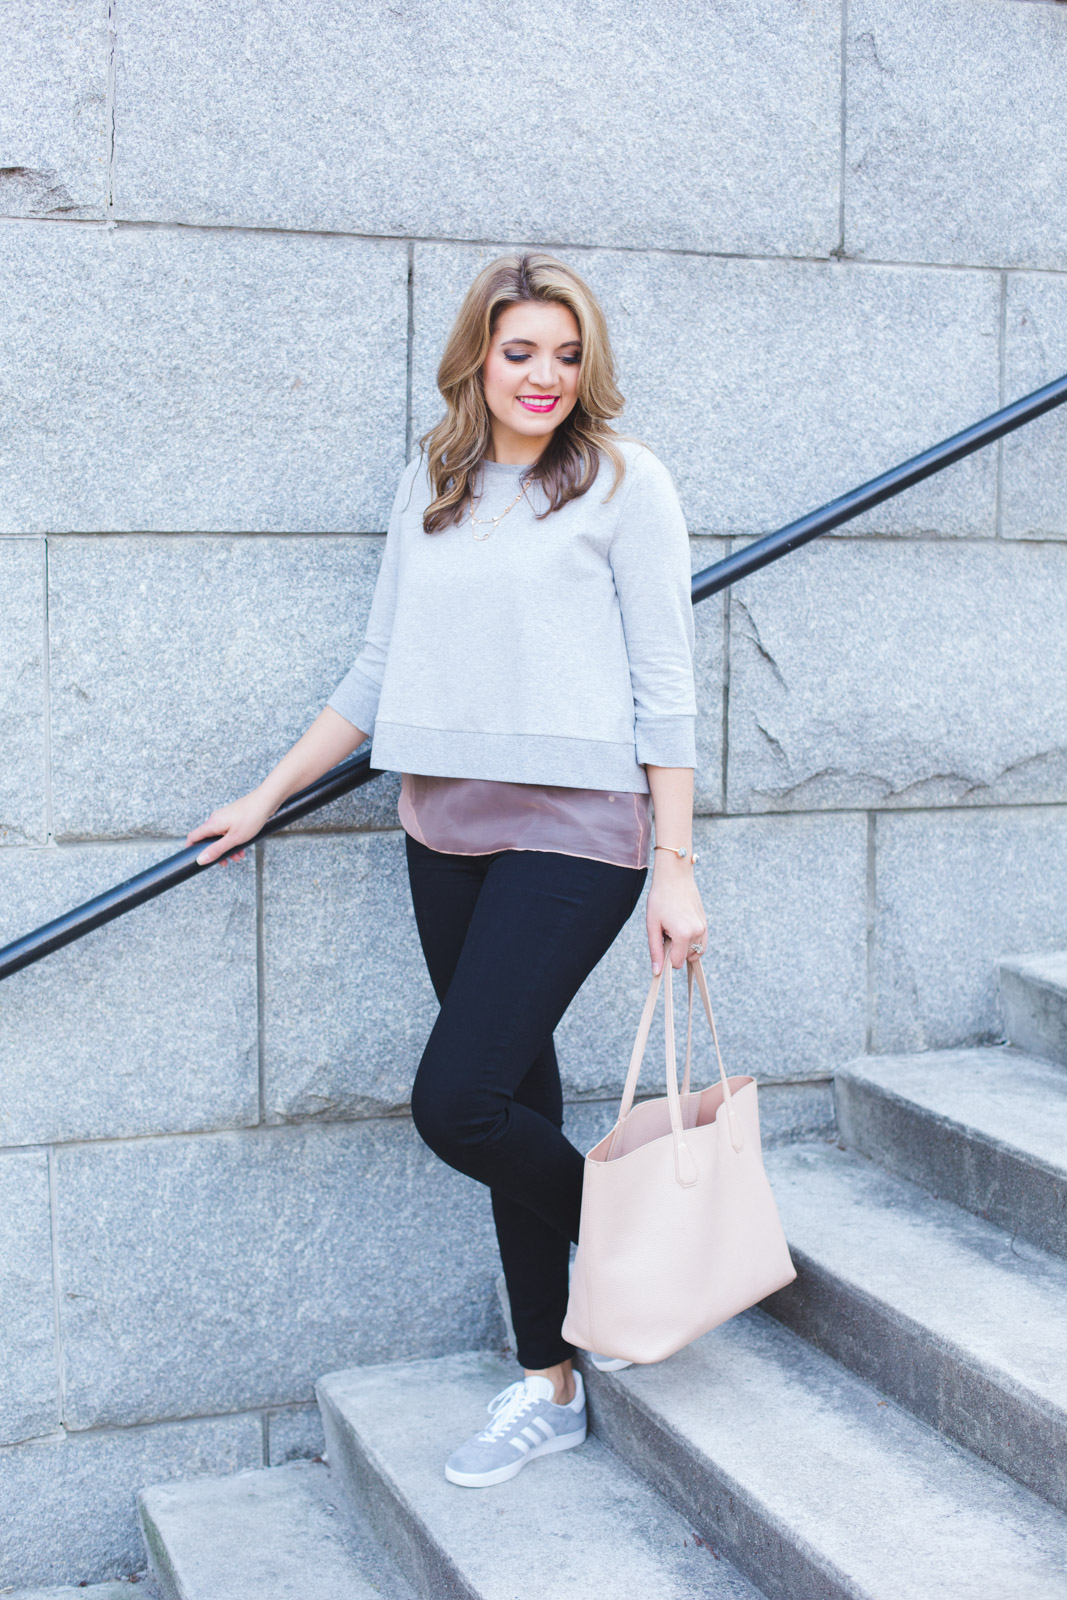 spring casual outfit with sneakers. Click through for more casual Spring outfits or to shop this look! www.bylaurenm.com